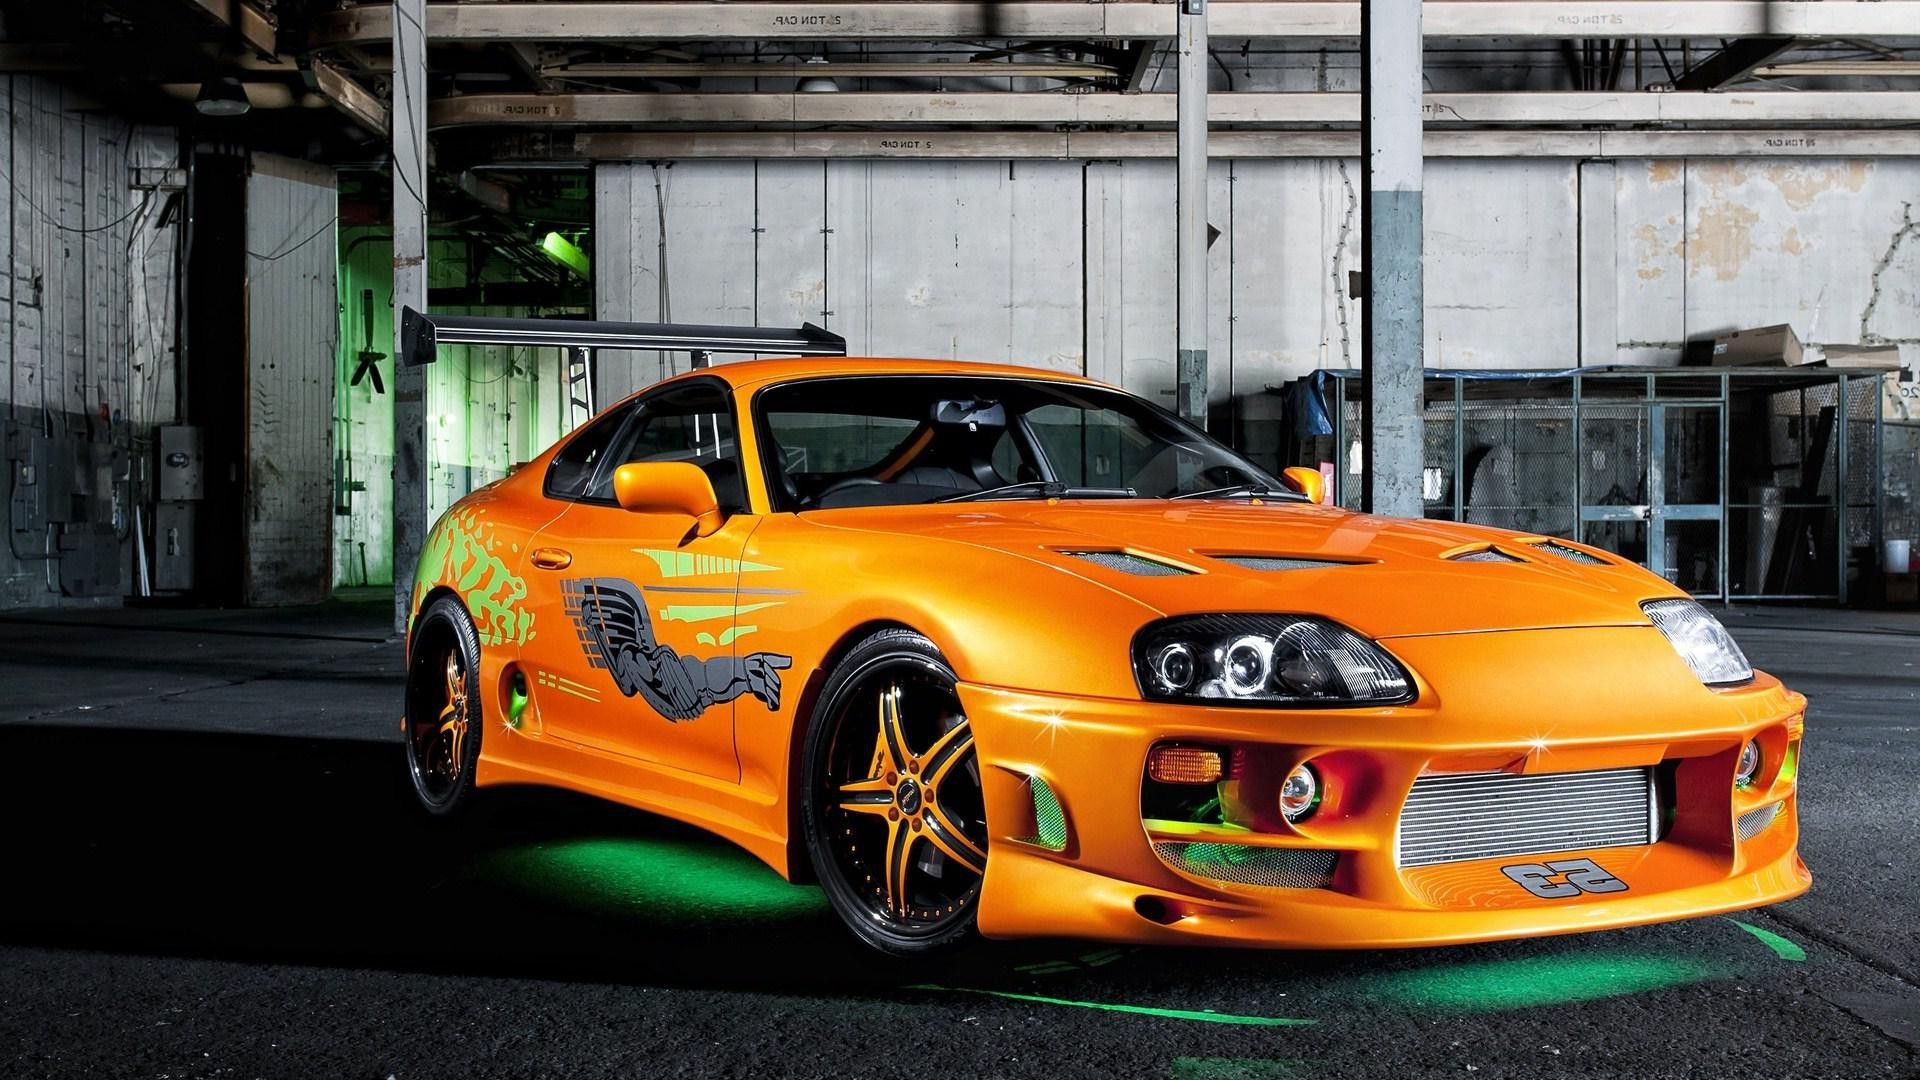 Toyota Supra Wallpapers on